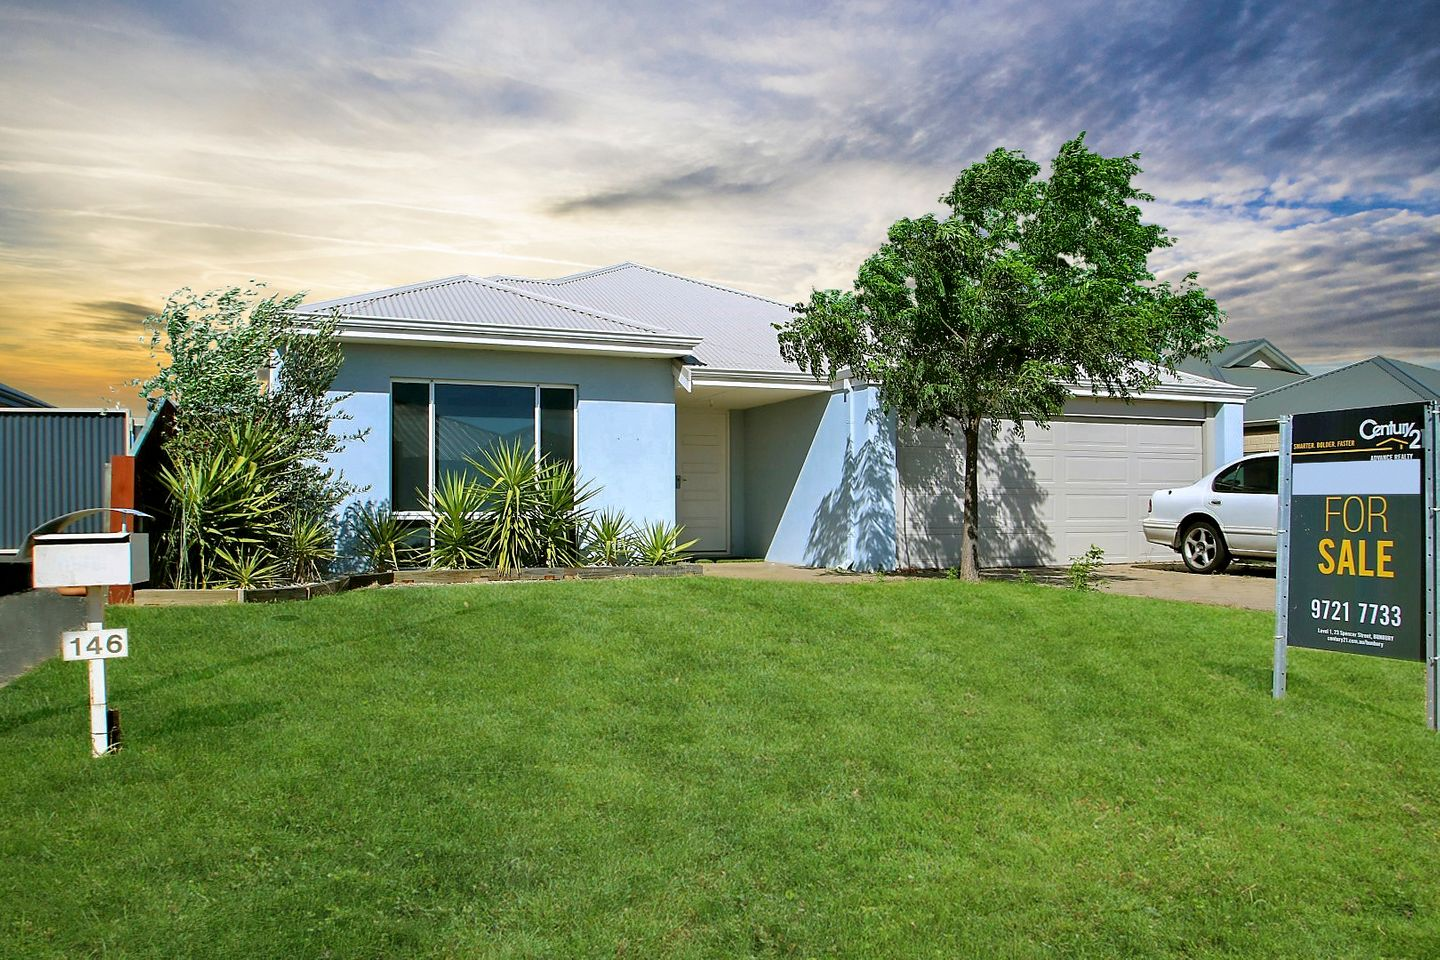 House For Sale - Australind